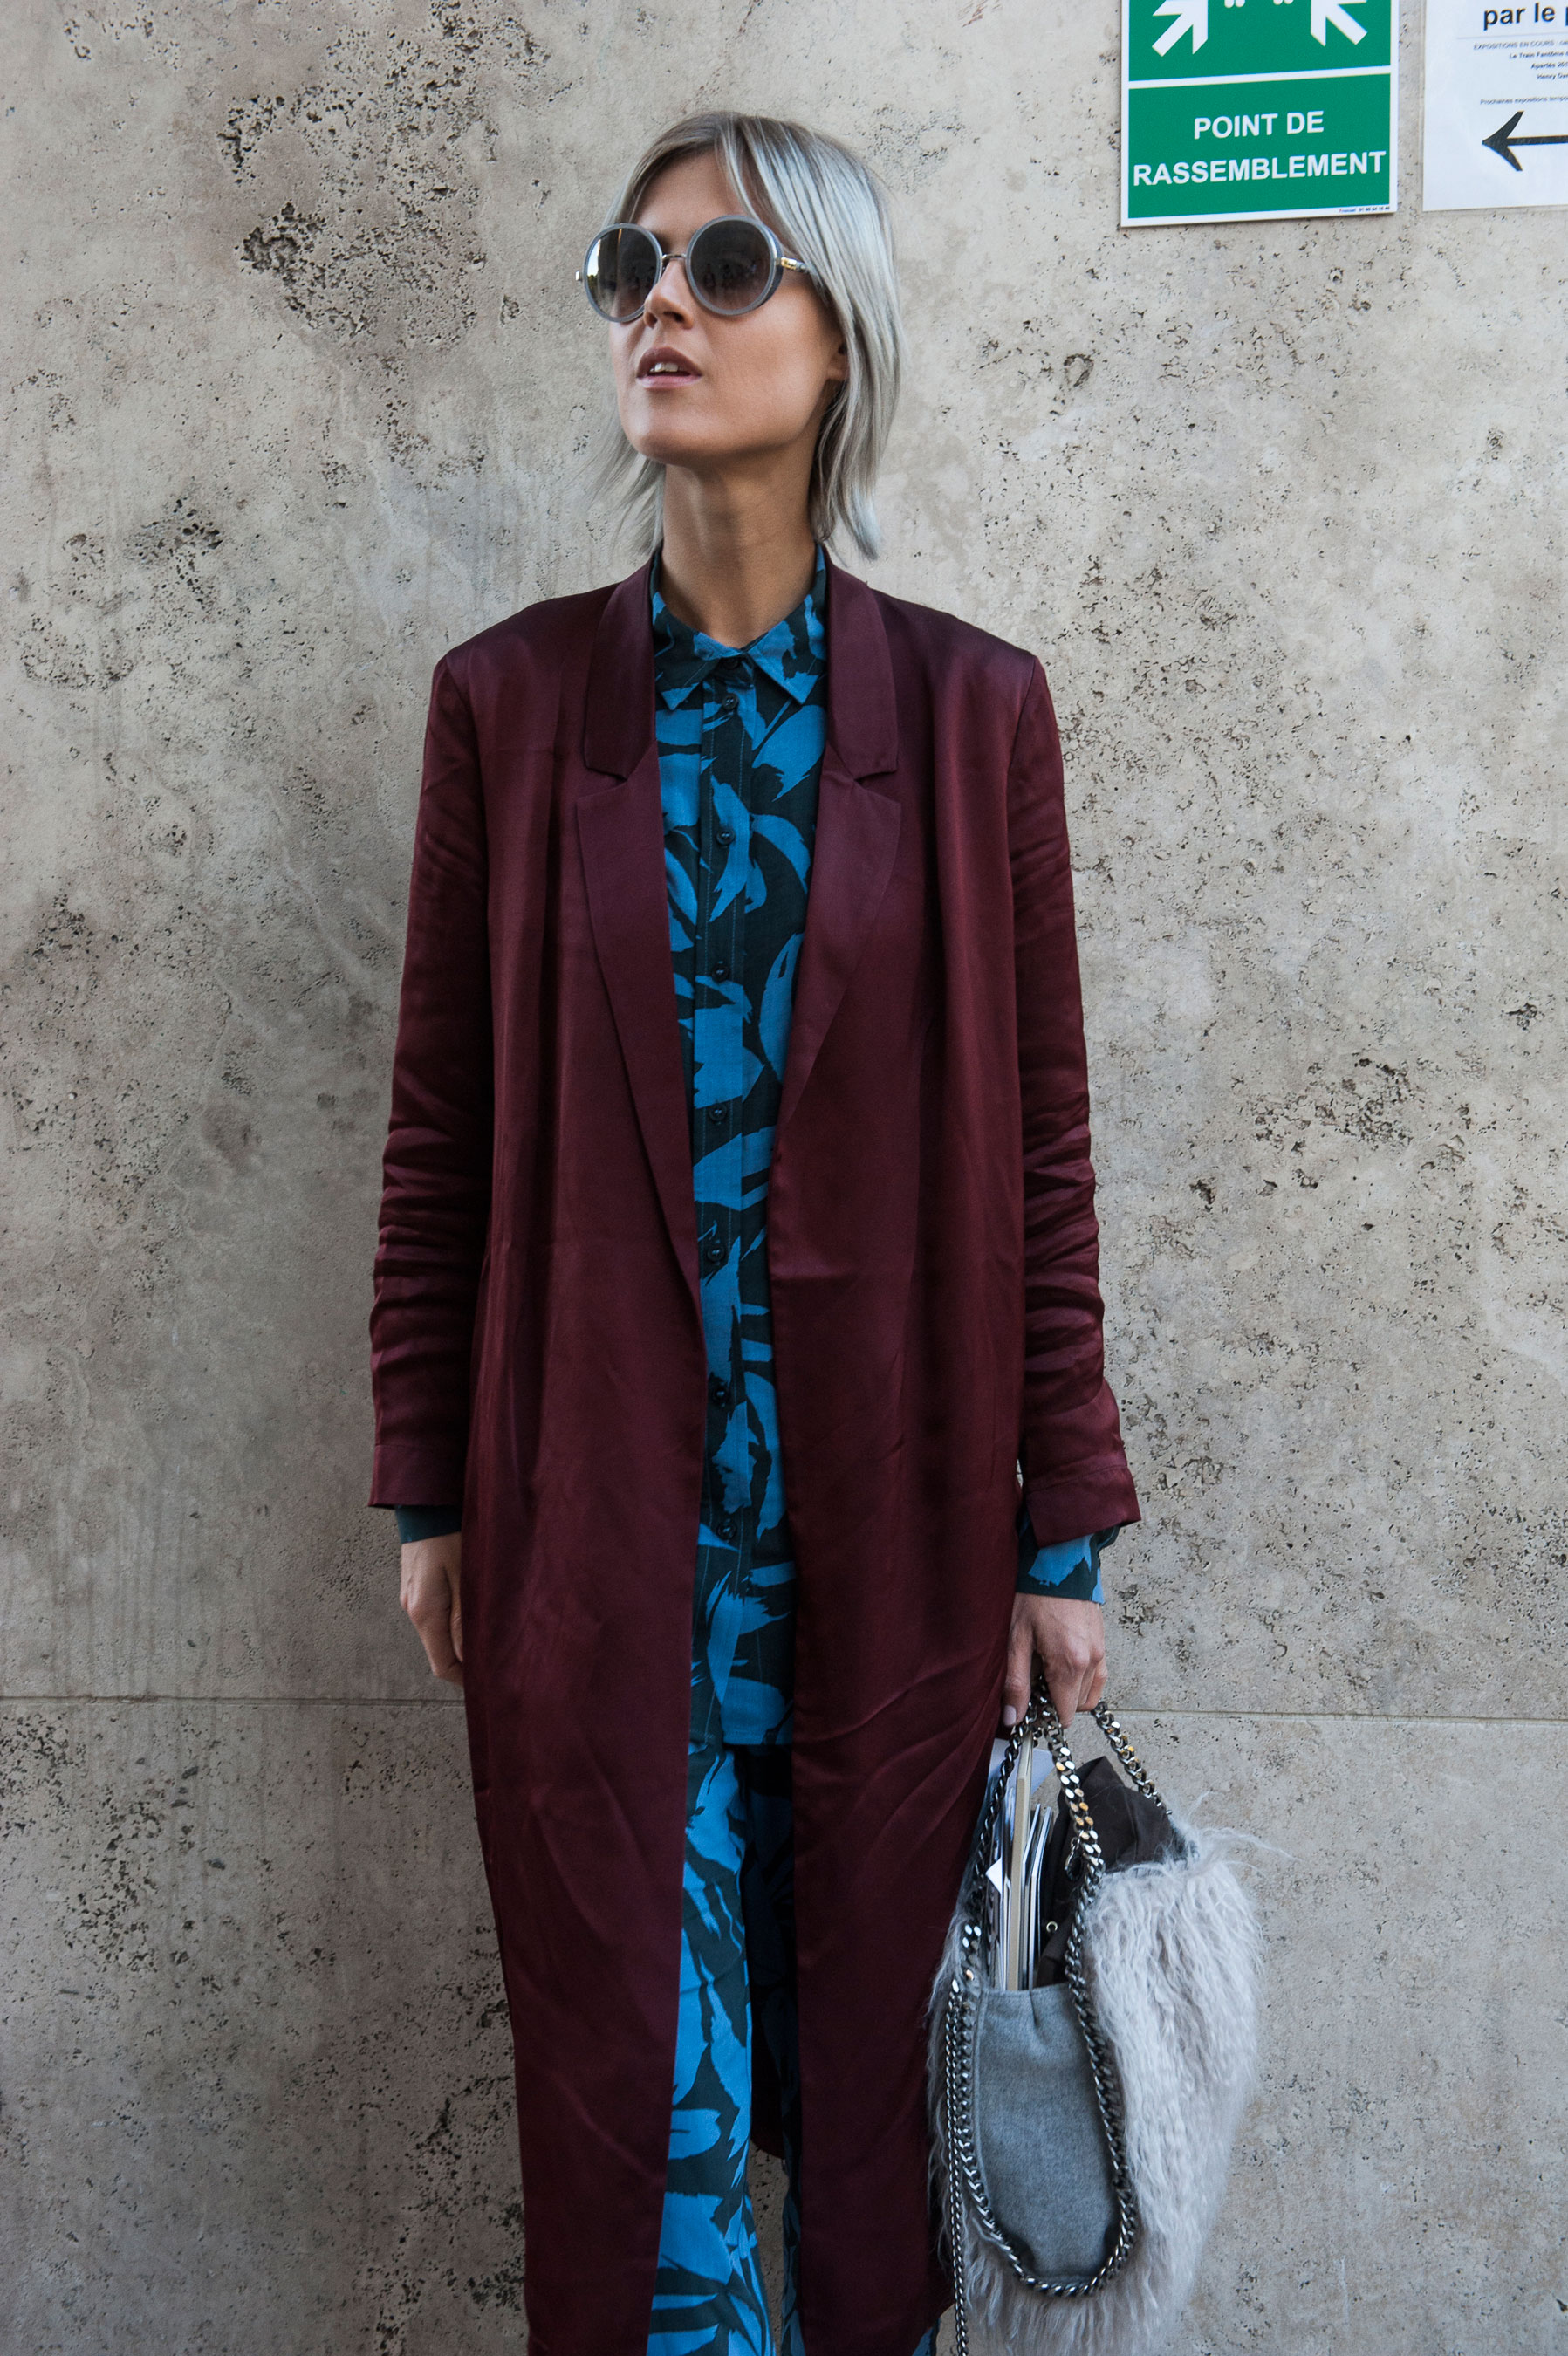 The Best Of Paris Fashion Week Street Style Spring 2016 Day 2